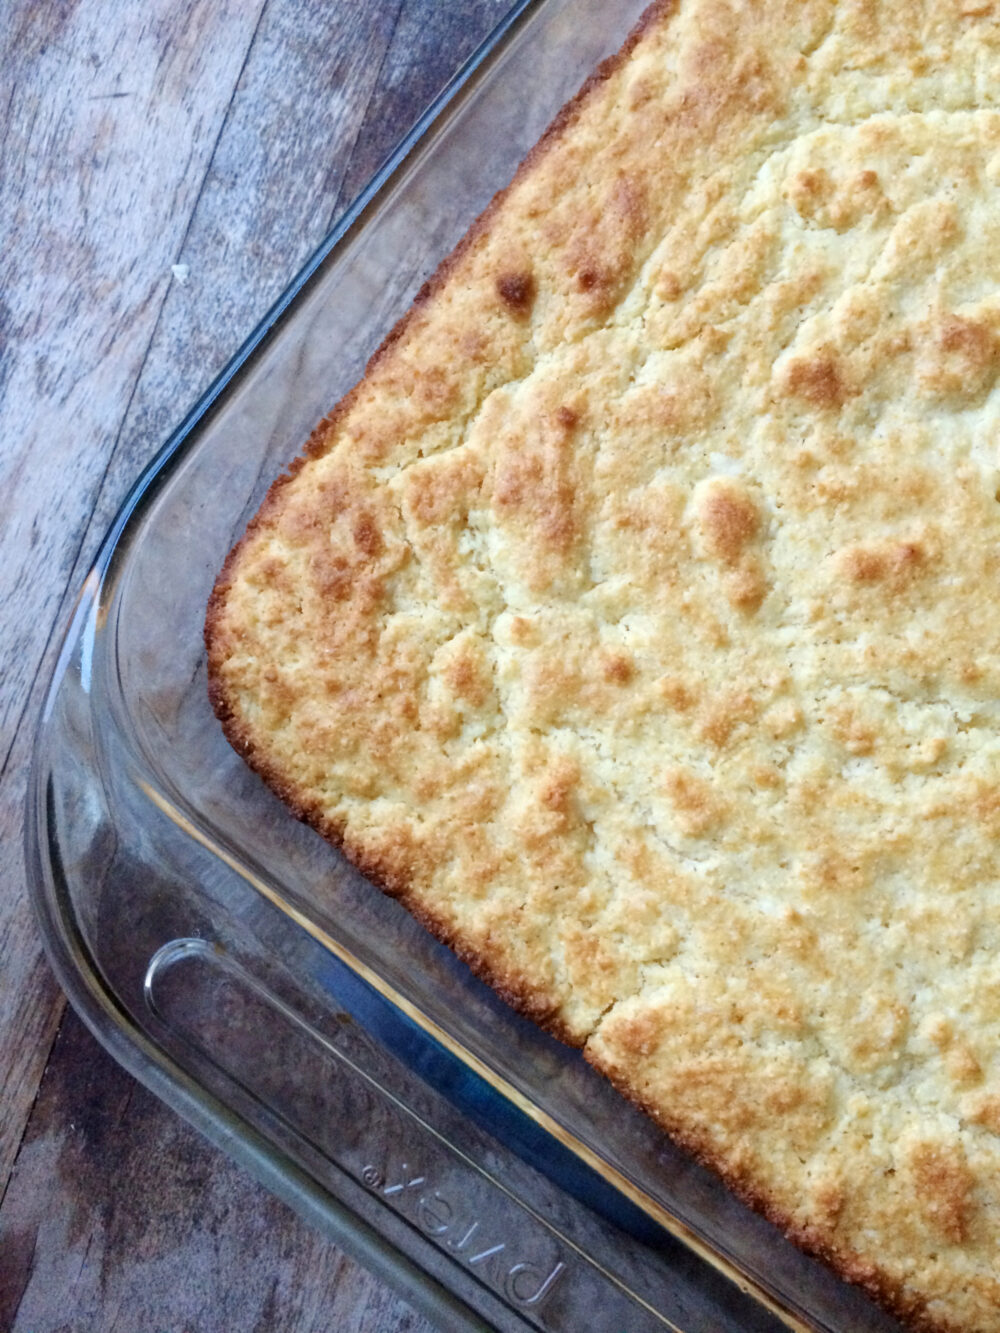 A glass pan of Buttery Cornbread is shown on a wooden countertop.